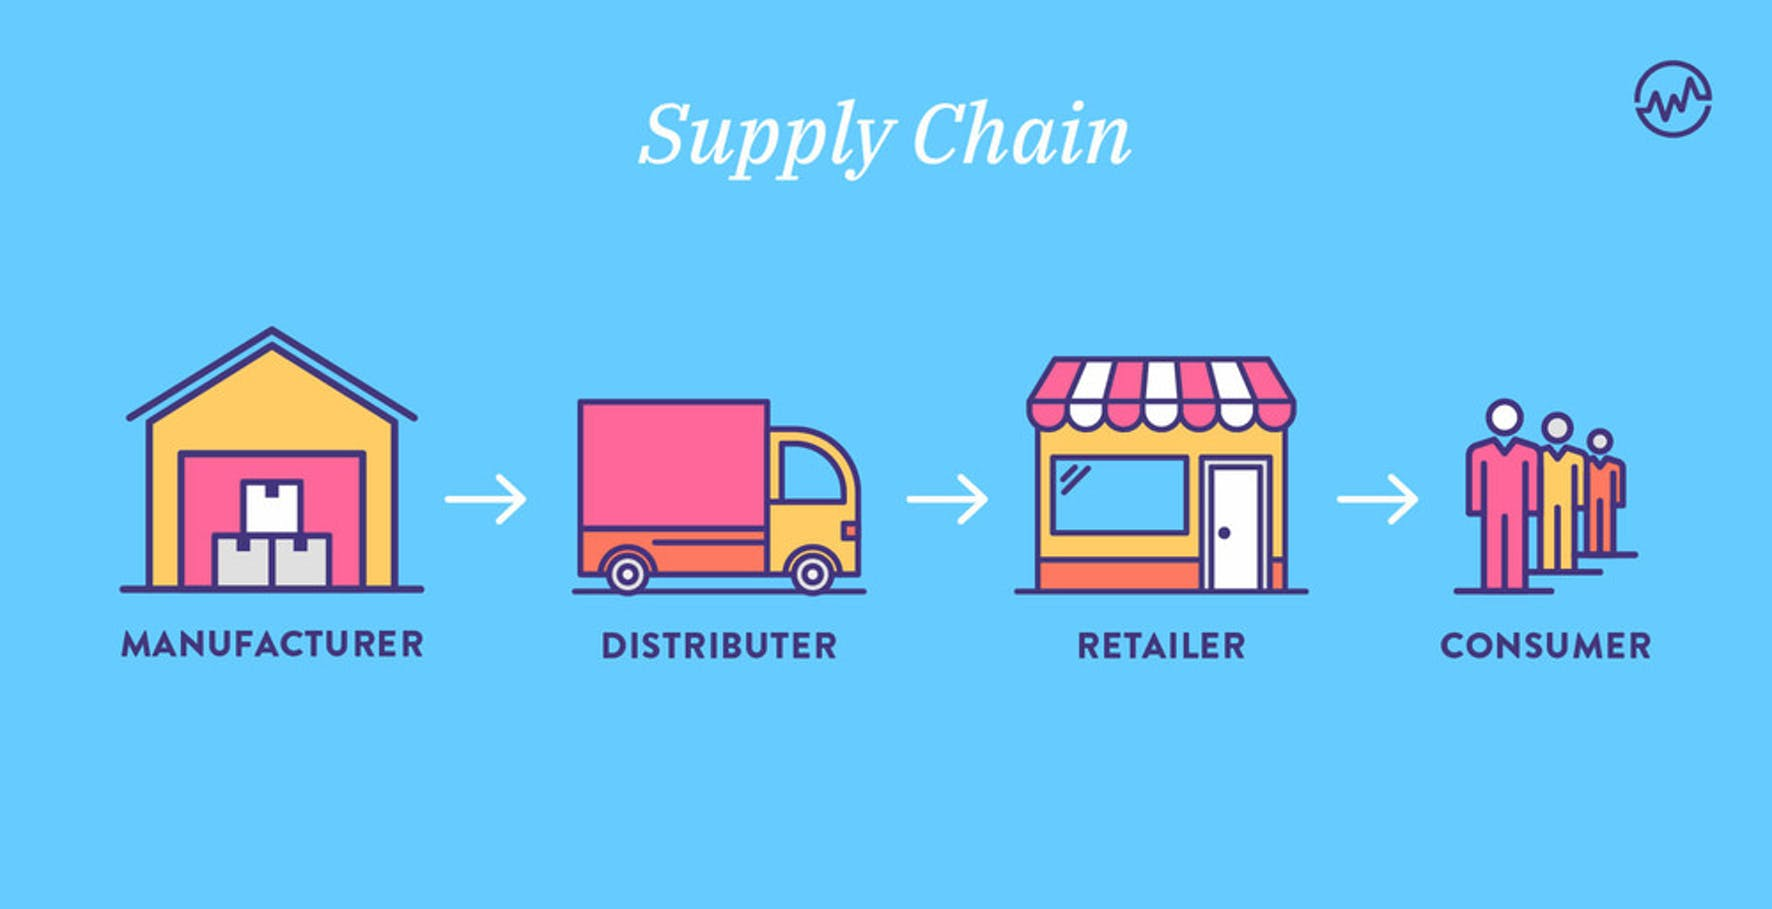 Supply chain graphic showing a manufacturer, distributor, retailer and consumer